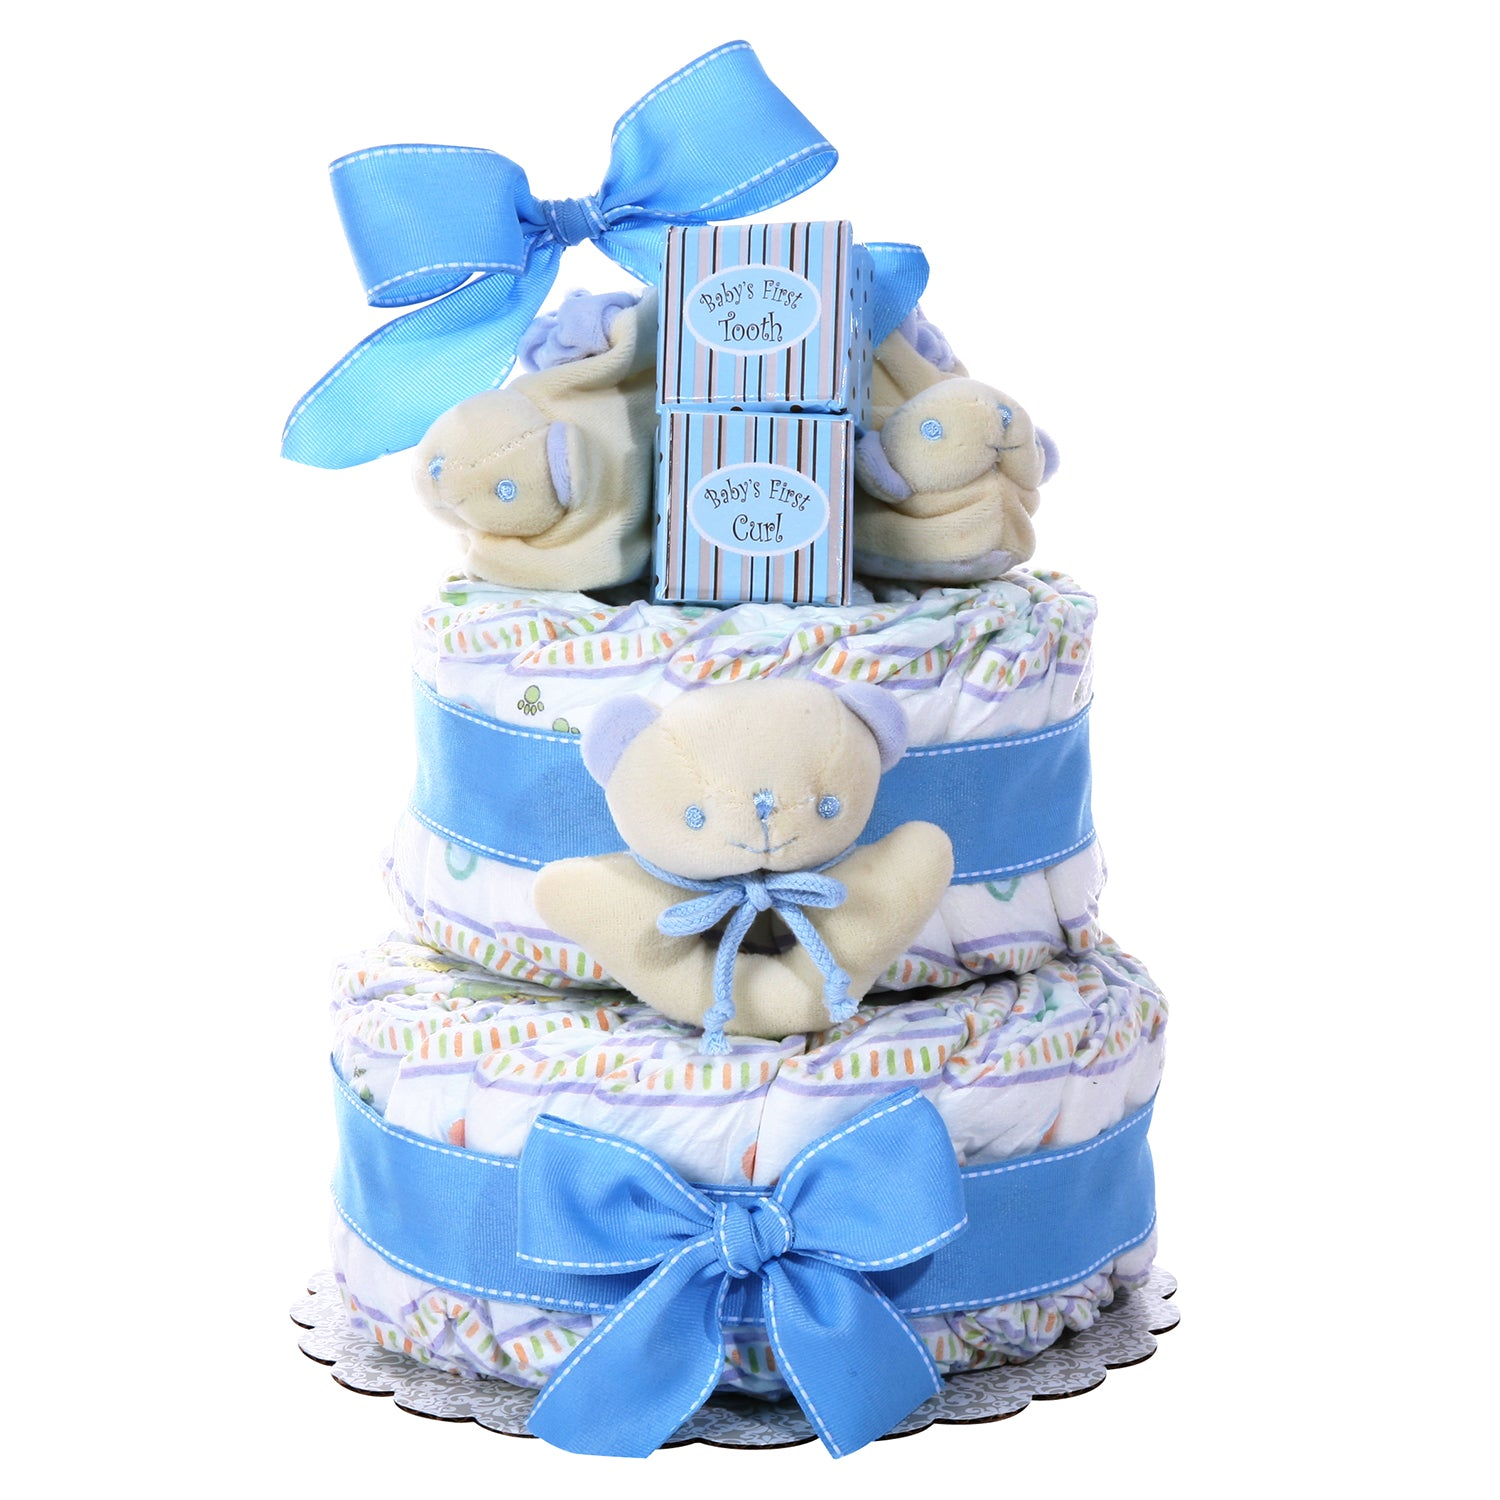 Two-Tier Diaper Cake - Boy's Baby Gift